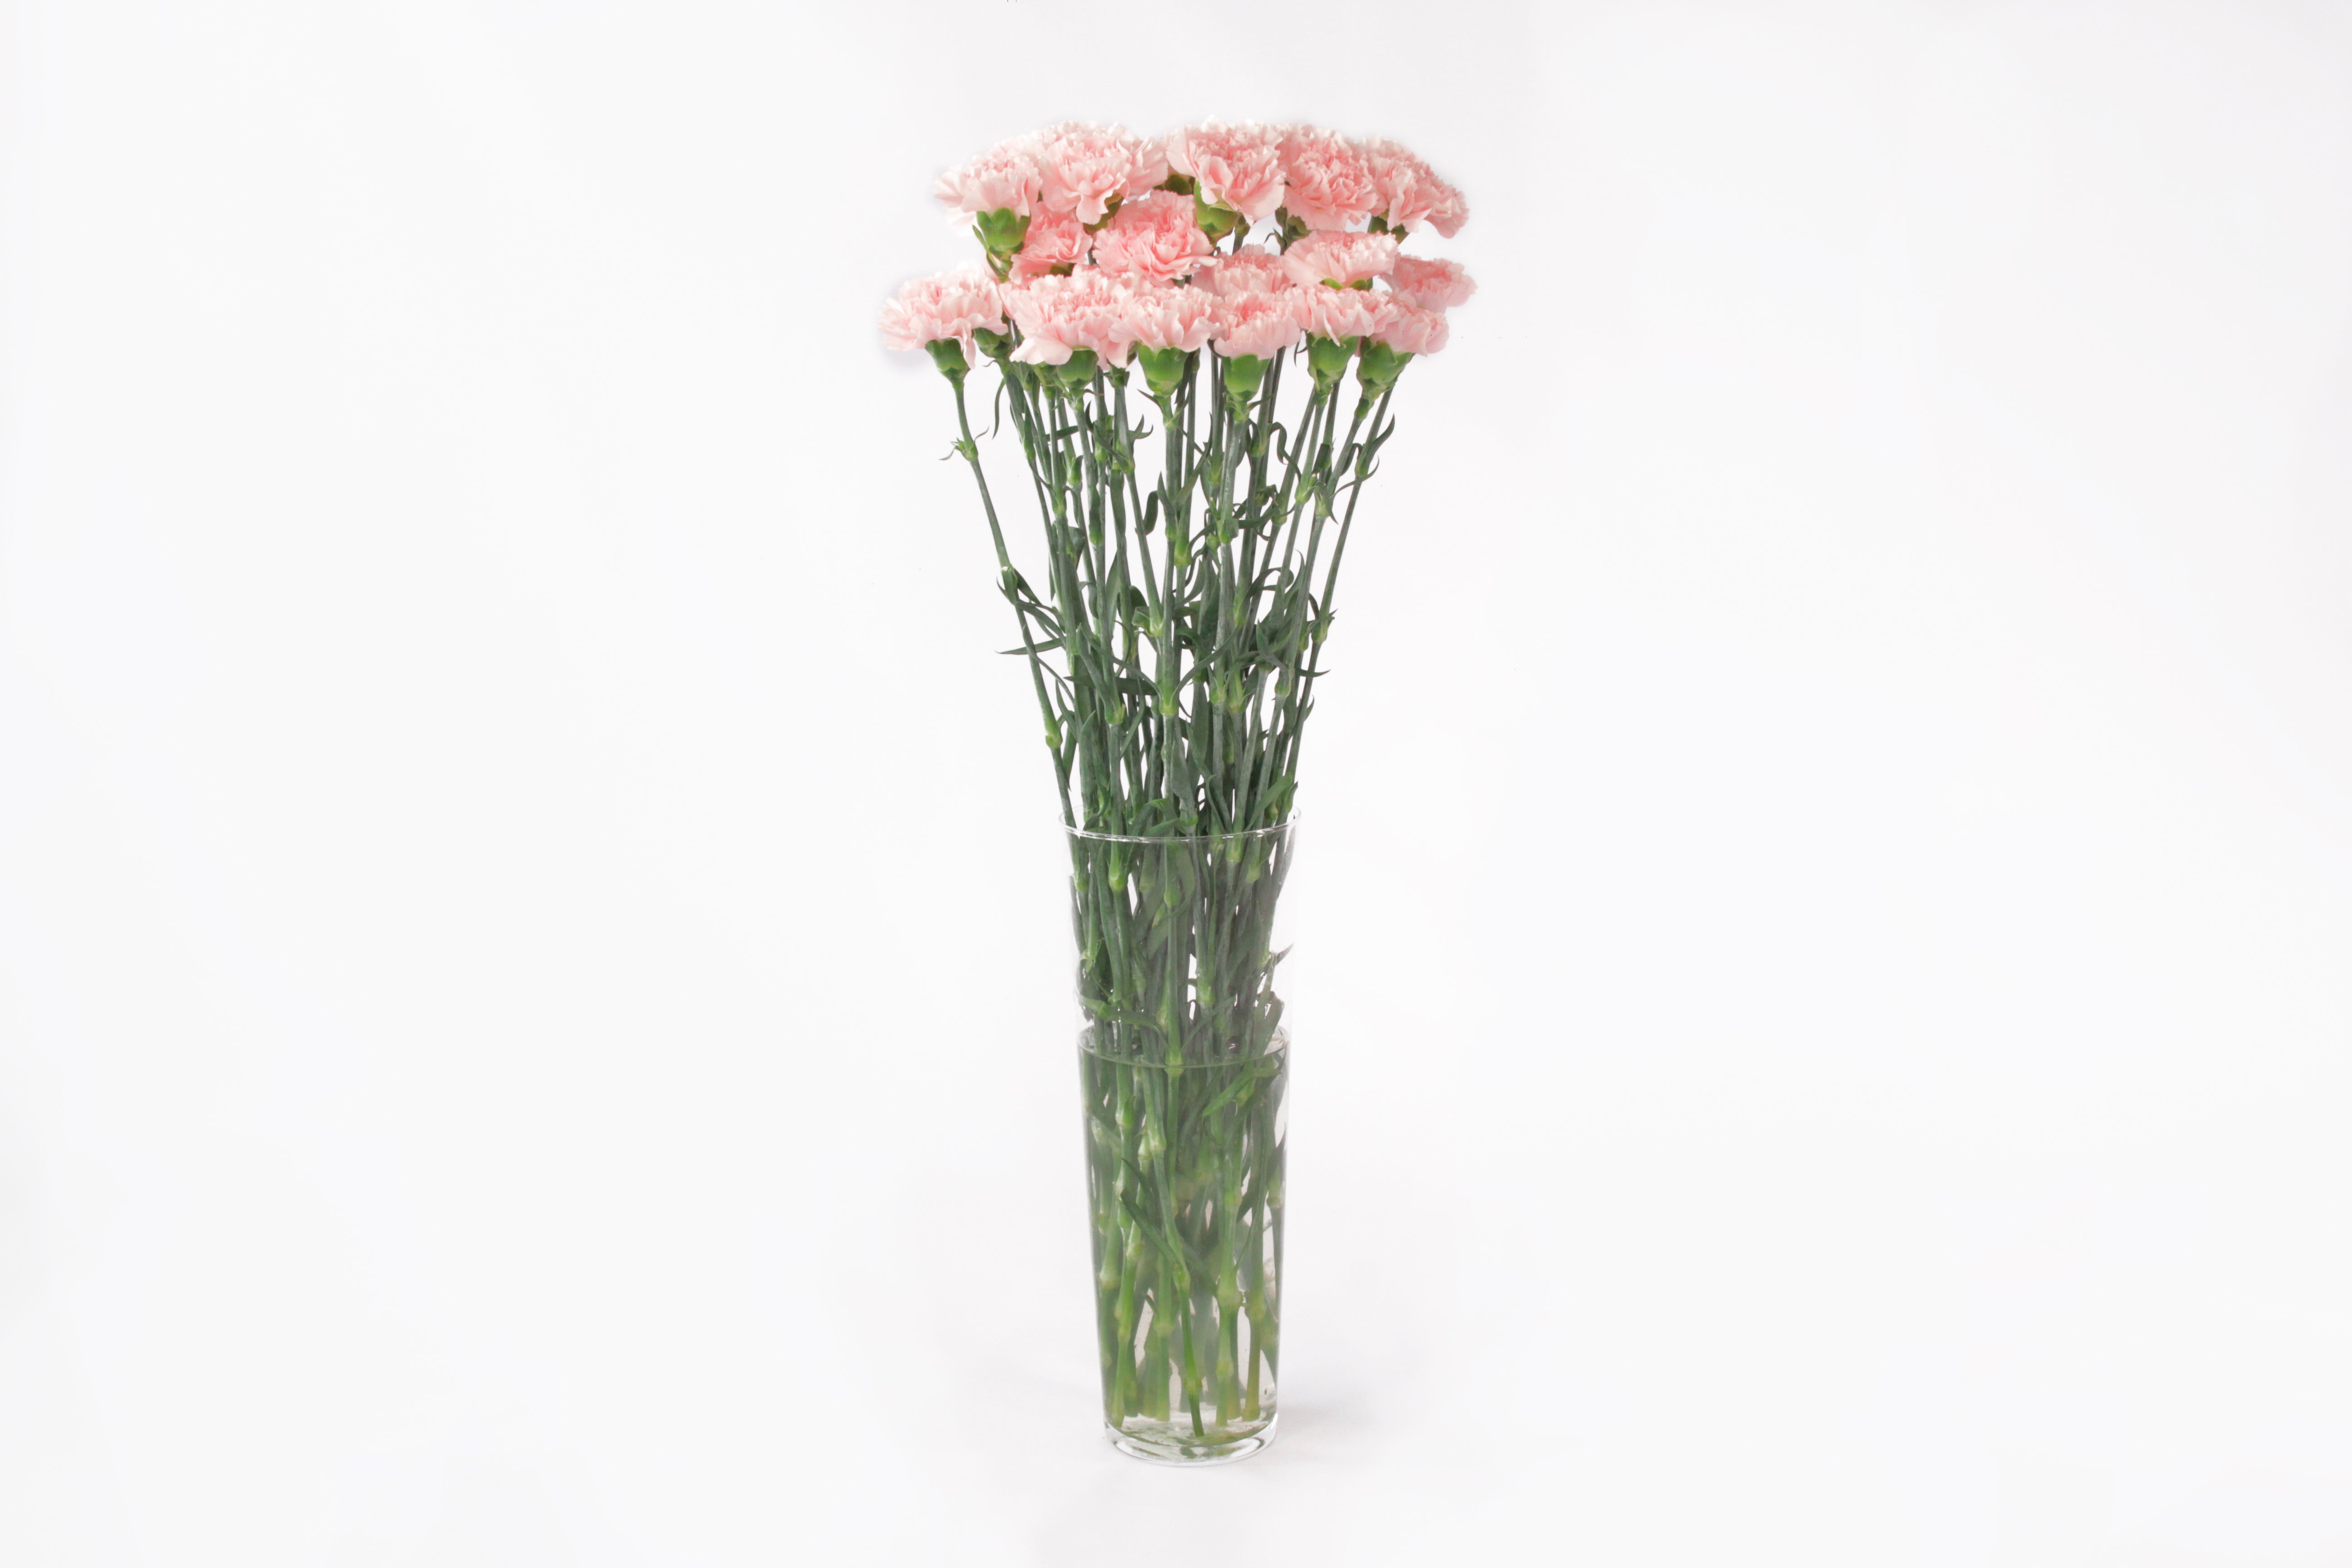 Pink carnations in their vase. Pink carnations are a symbol of gratitude and love.